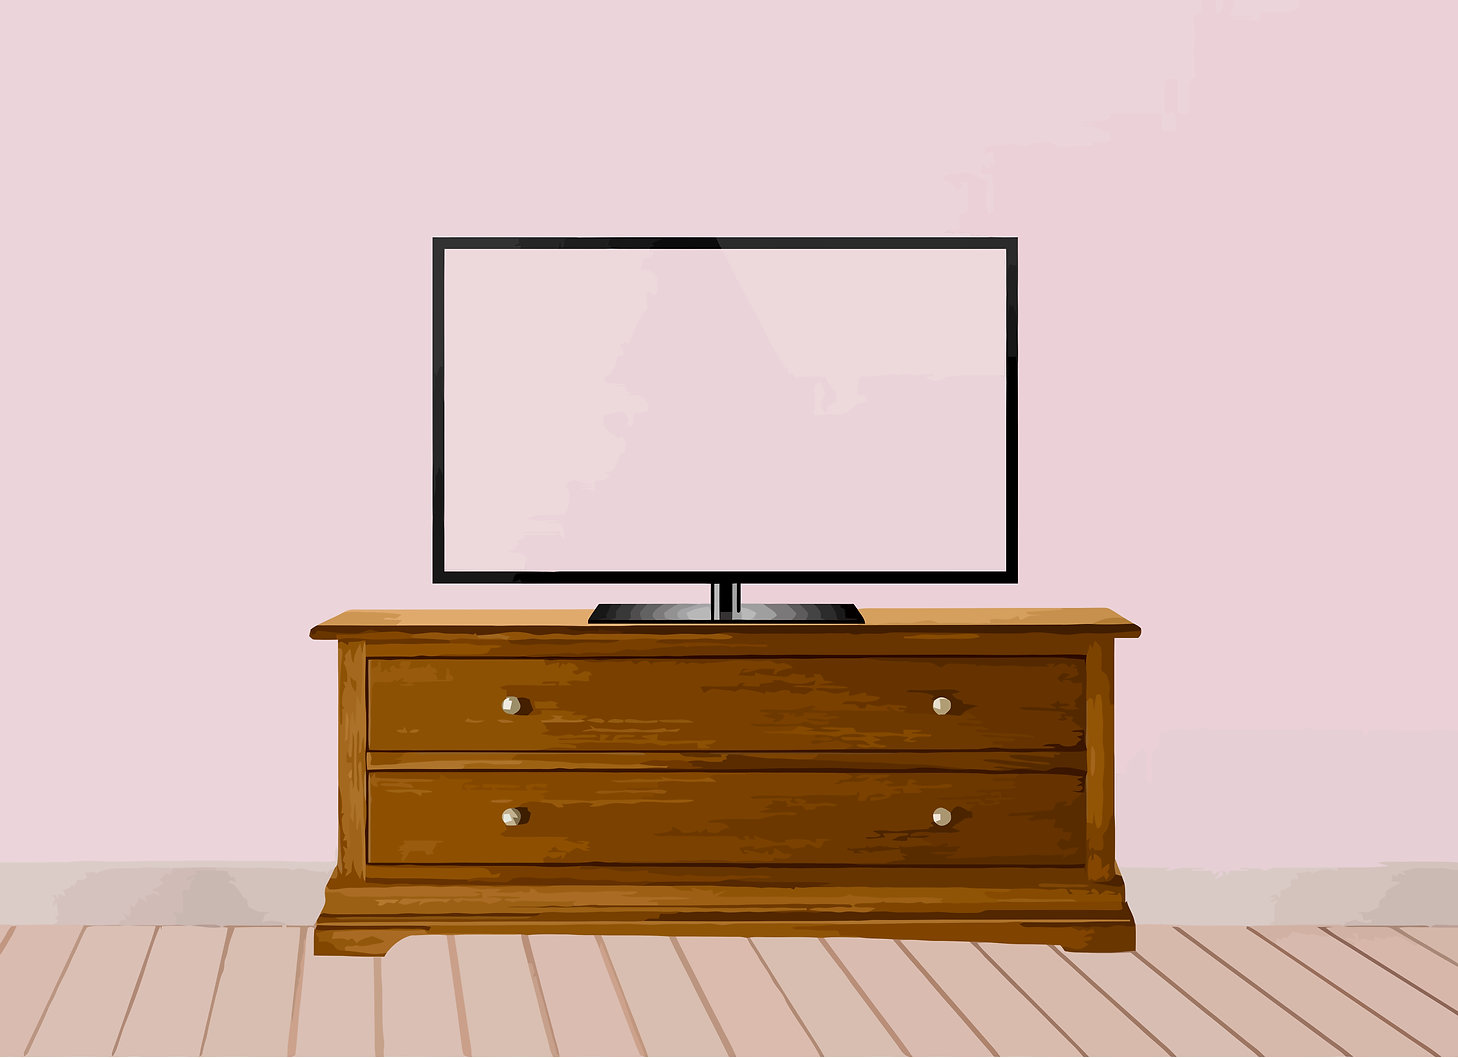 Background image featuring a TV to display videos